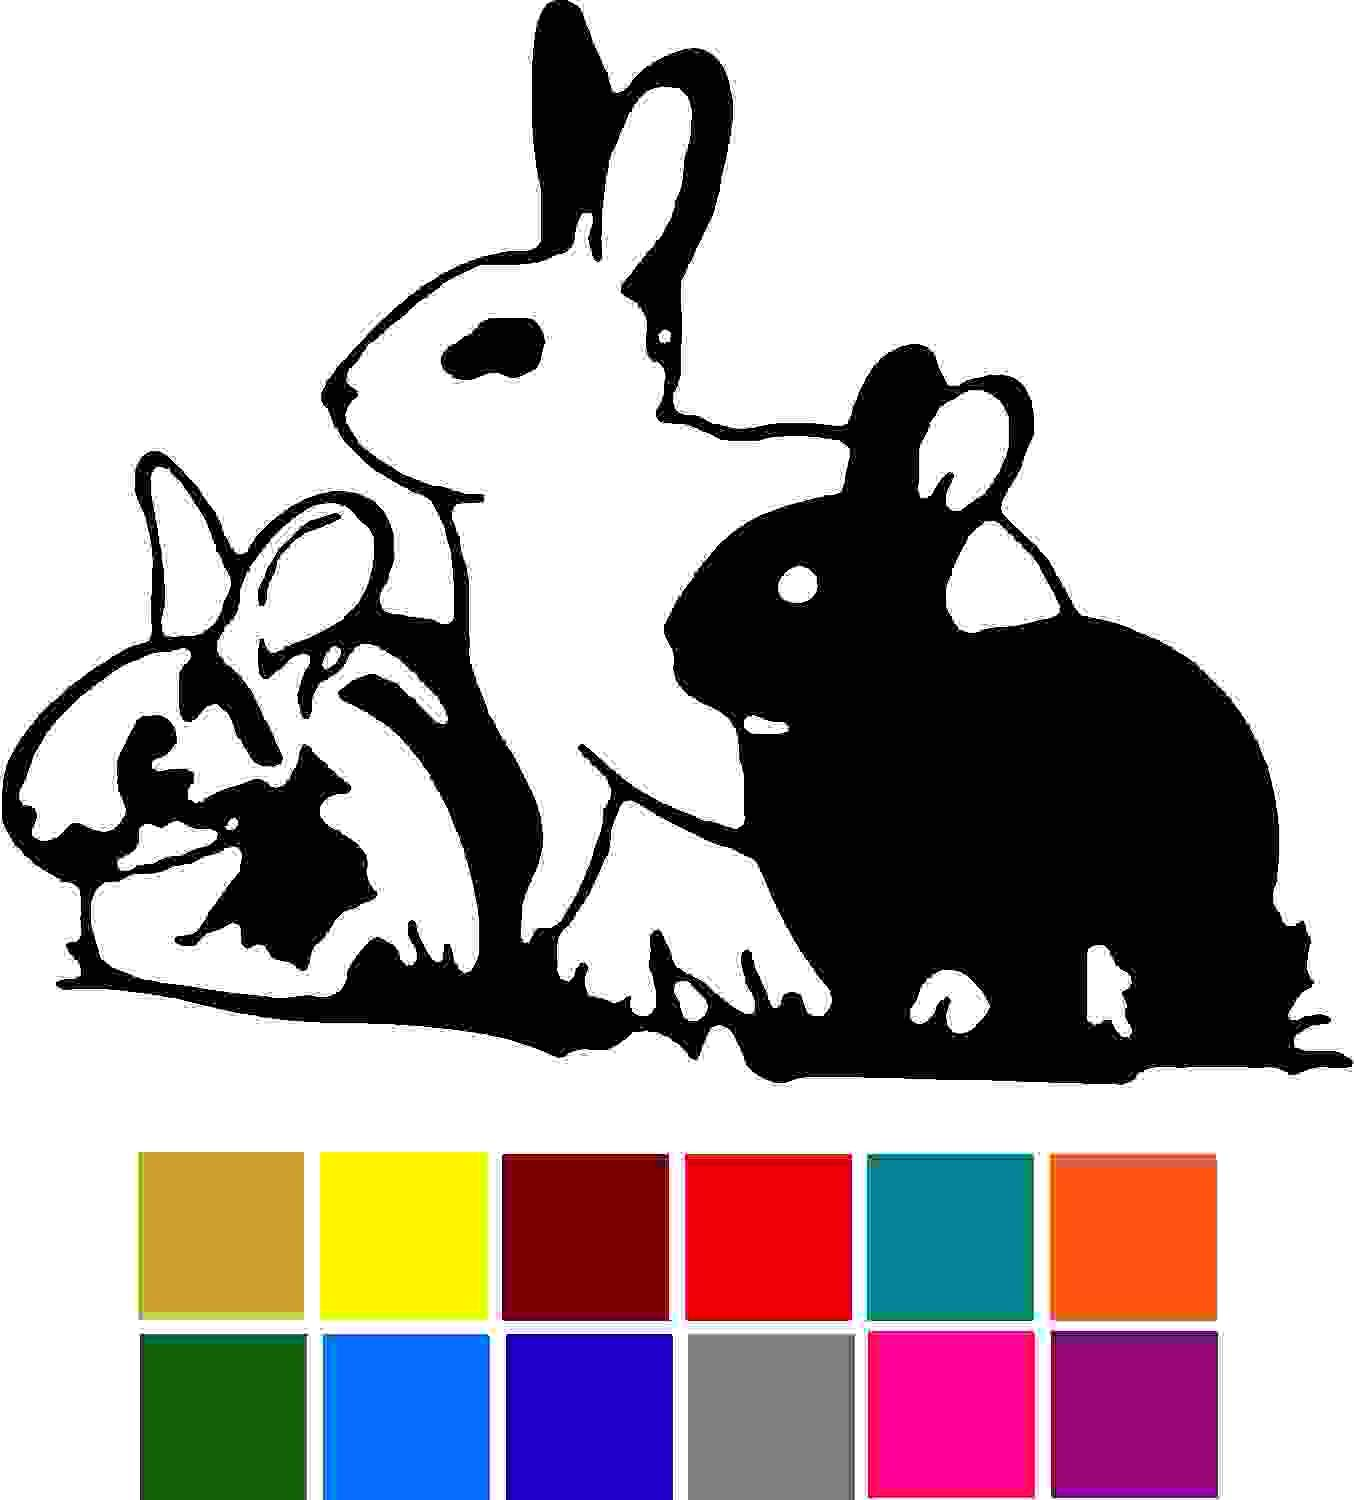 Animal Bunnies Pet Car Window Tumblers Wall Decal Sticker Vinyl Laptops Cellphones Phones Tablets Ipads Helmets Motorcycles Computer Towers V and T Gifts